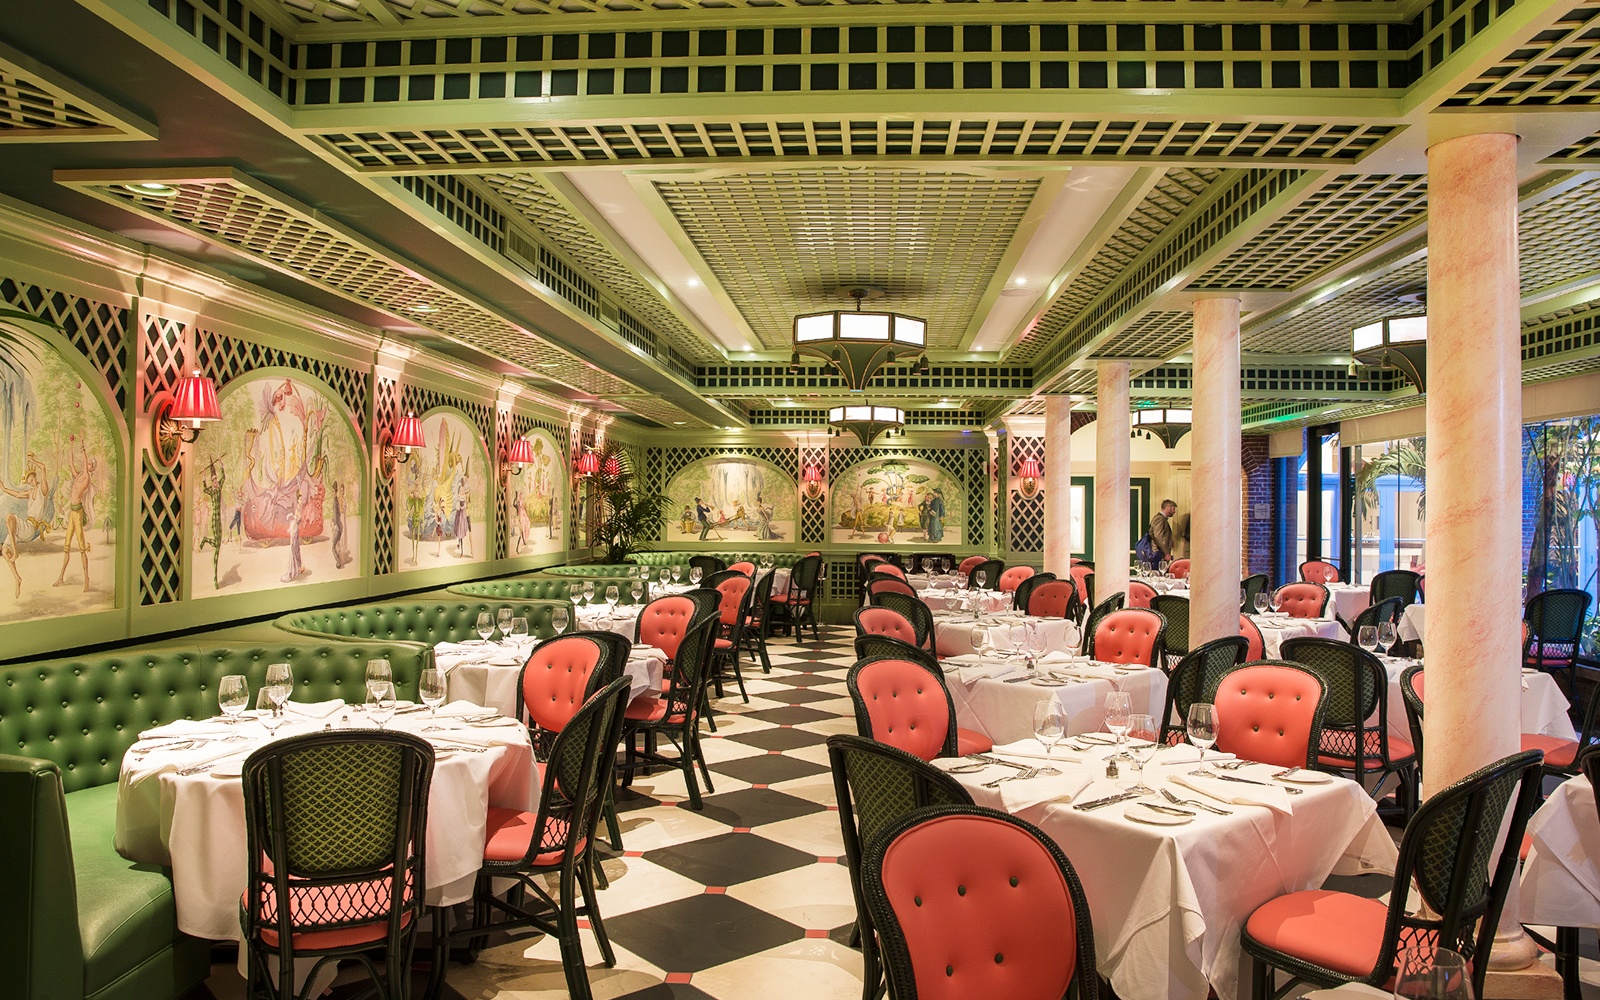 Brennan's Restaurant in New Orleans, Louisiana